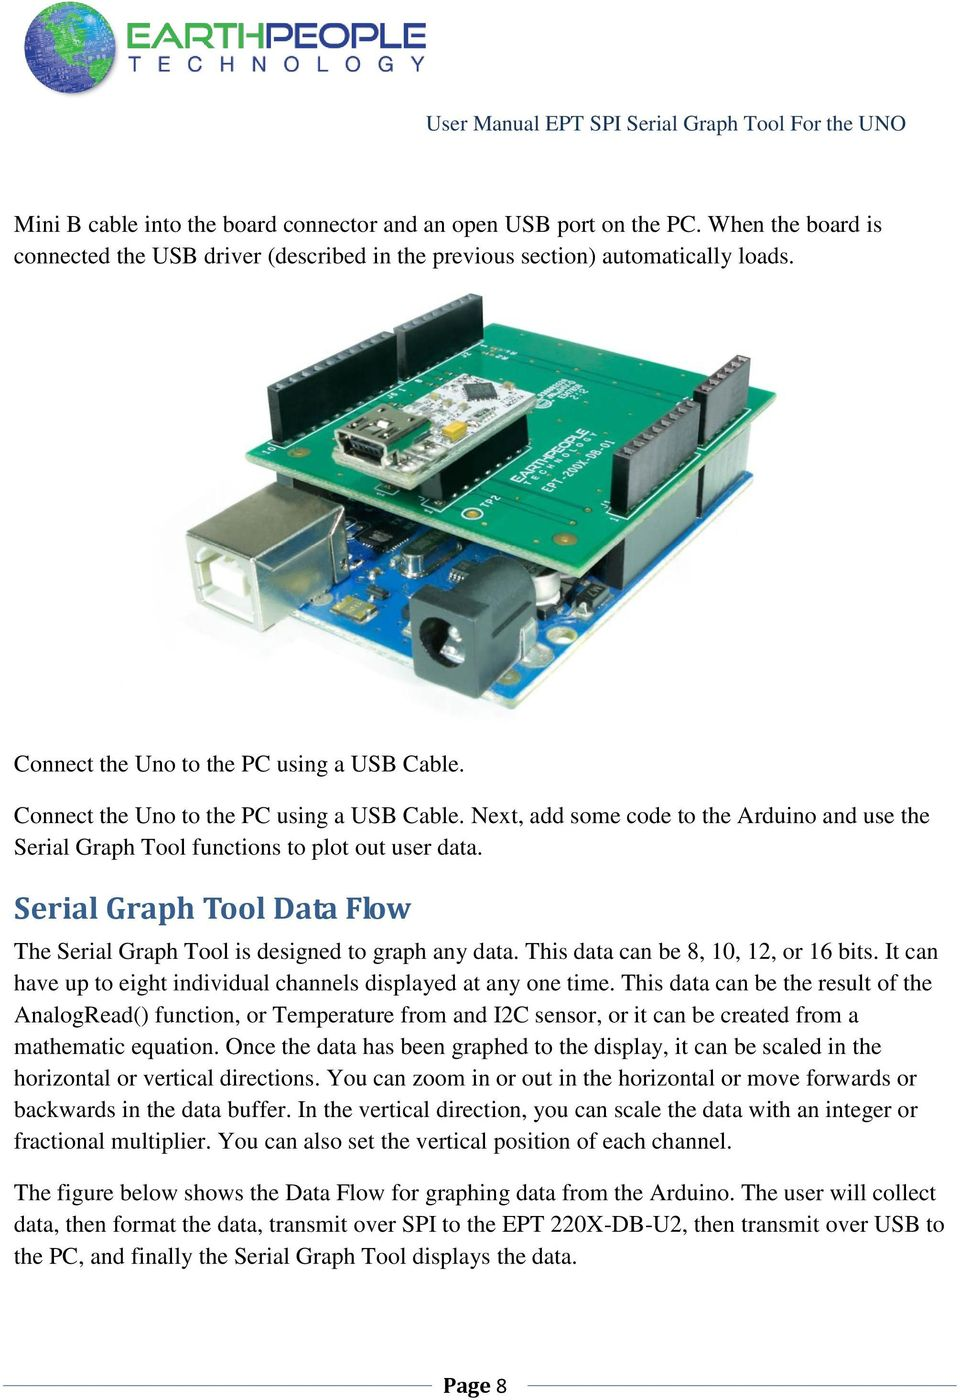 EARTH PEOPLE TECHNOLOGY SERIAL GRAPH TOOL FOR THE ARDUINO UNO USER